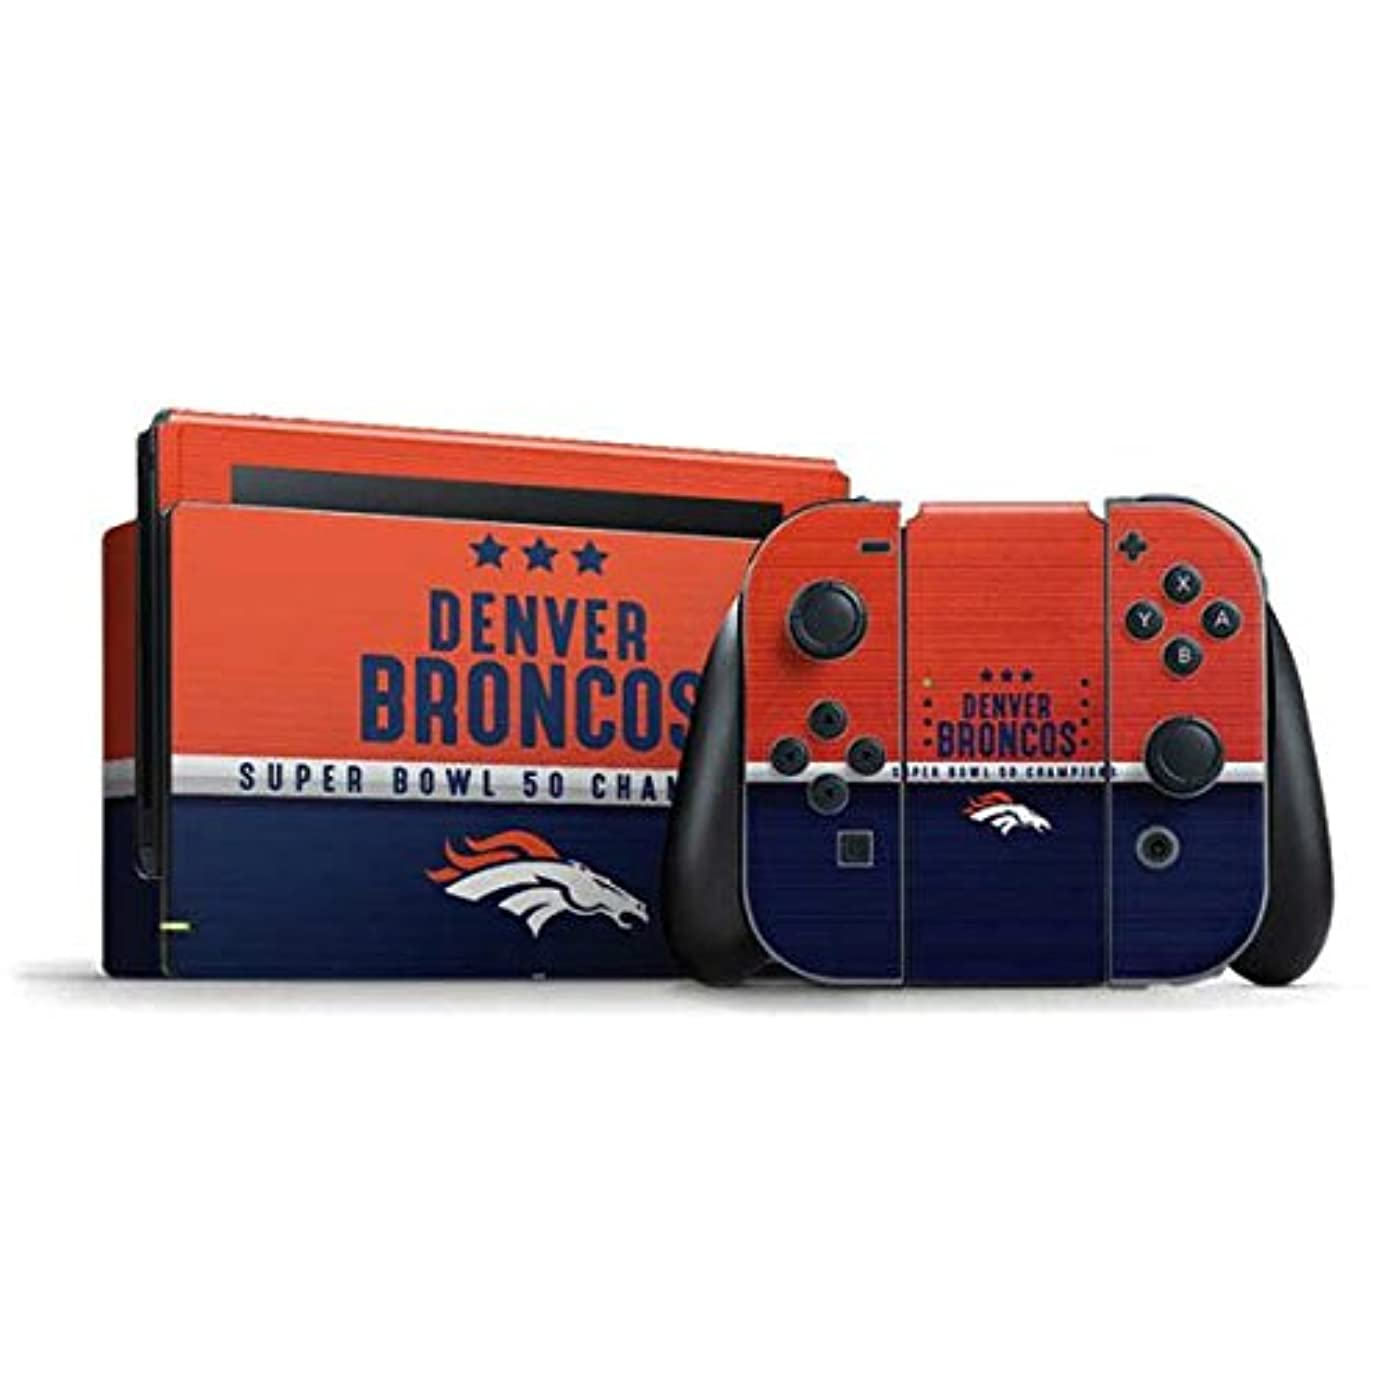 NFL Denver Broncos Nintendo Switch Bundle Skin - Denver Broncos Super Bowl 50 Champions Vinyl Decal Skin For Your Switch Bundle